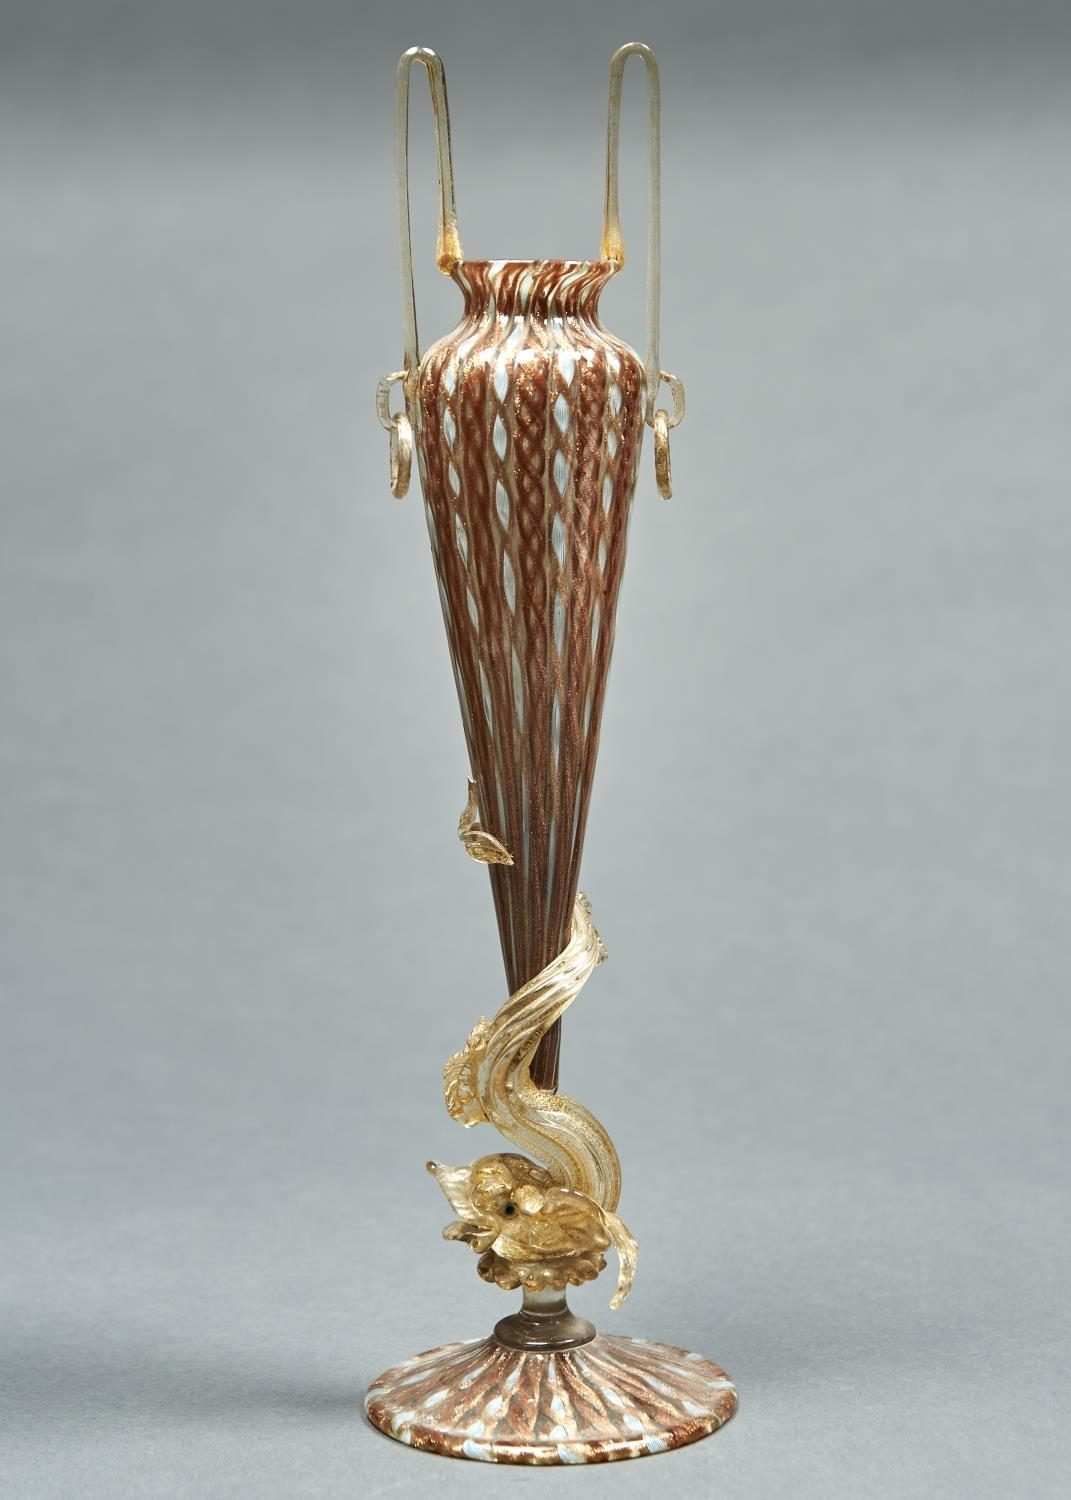 A VENETIAN BALOTON-BLOWN GLASS VASE WITH DOLPHIN STEM, PROBABLY SALVIATI & CO, C1900, WITH